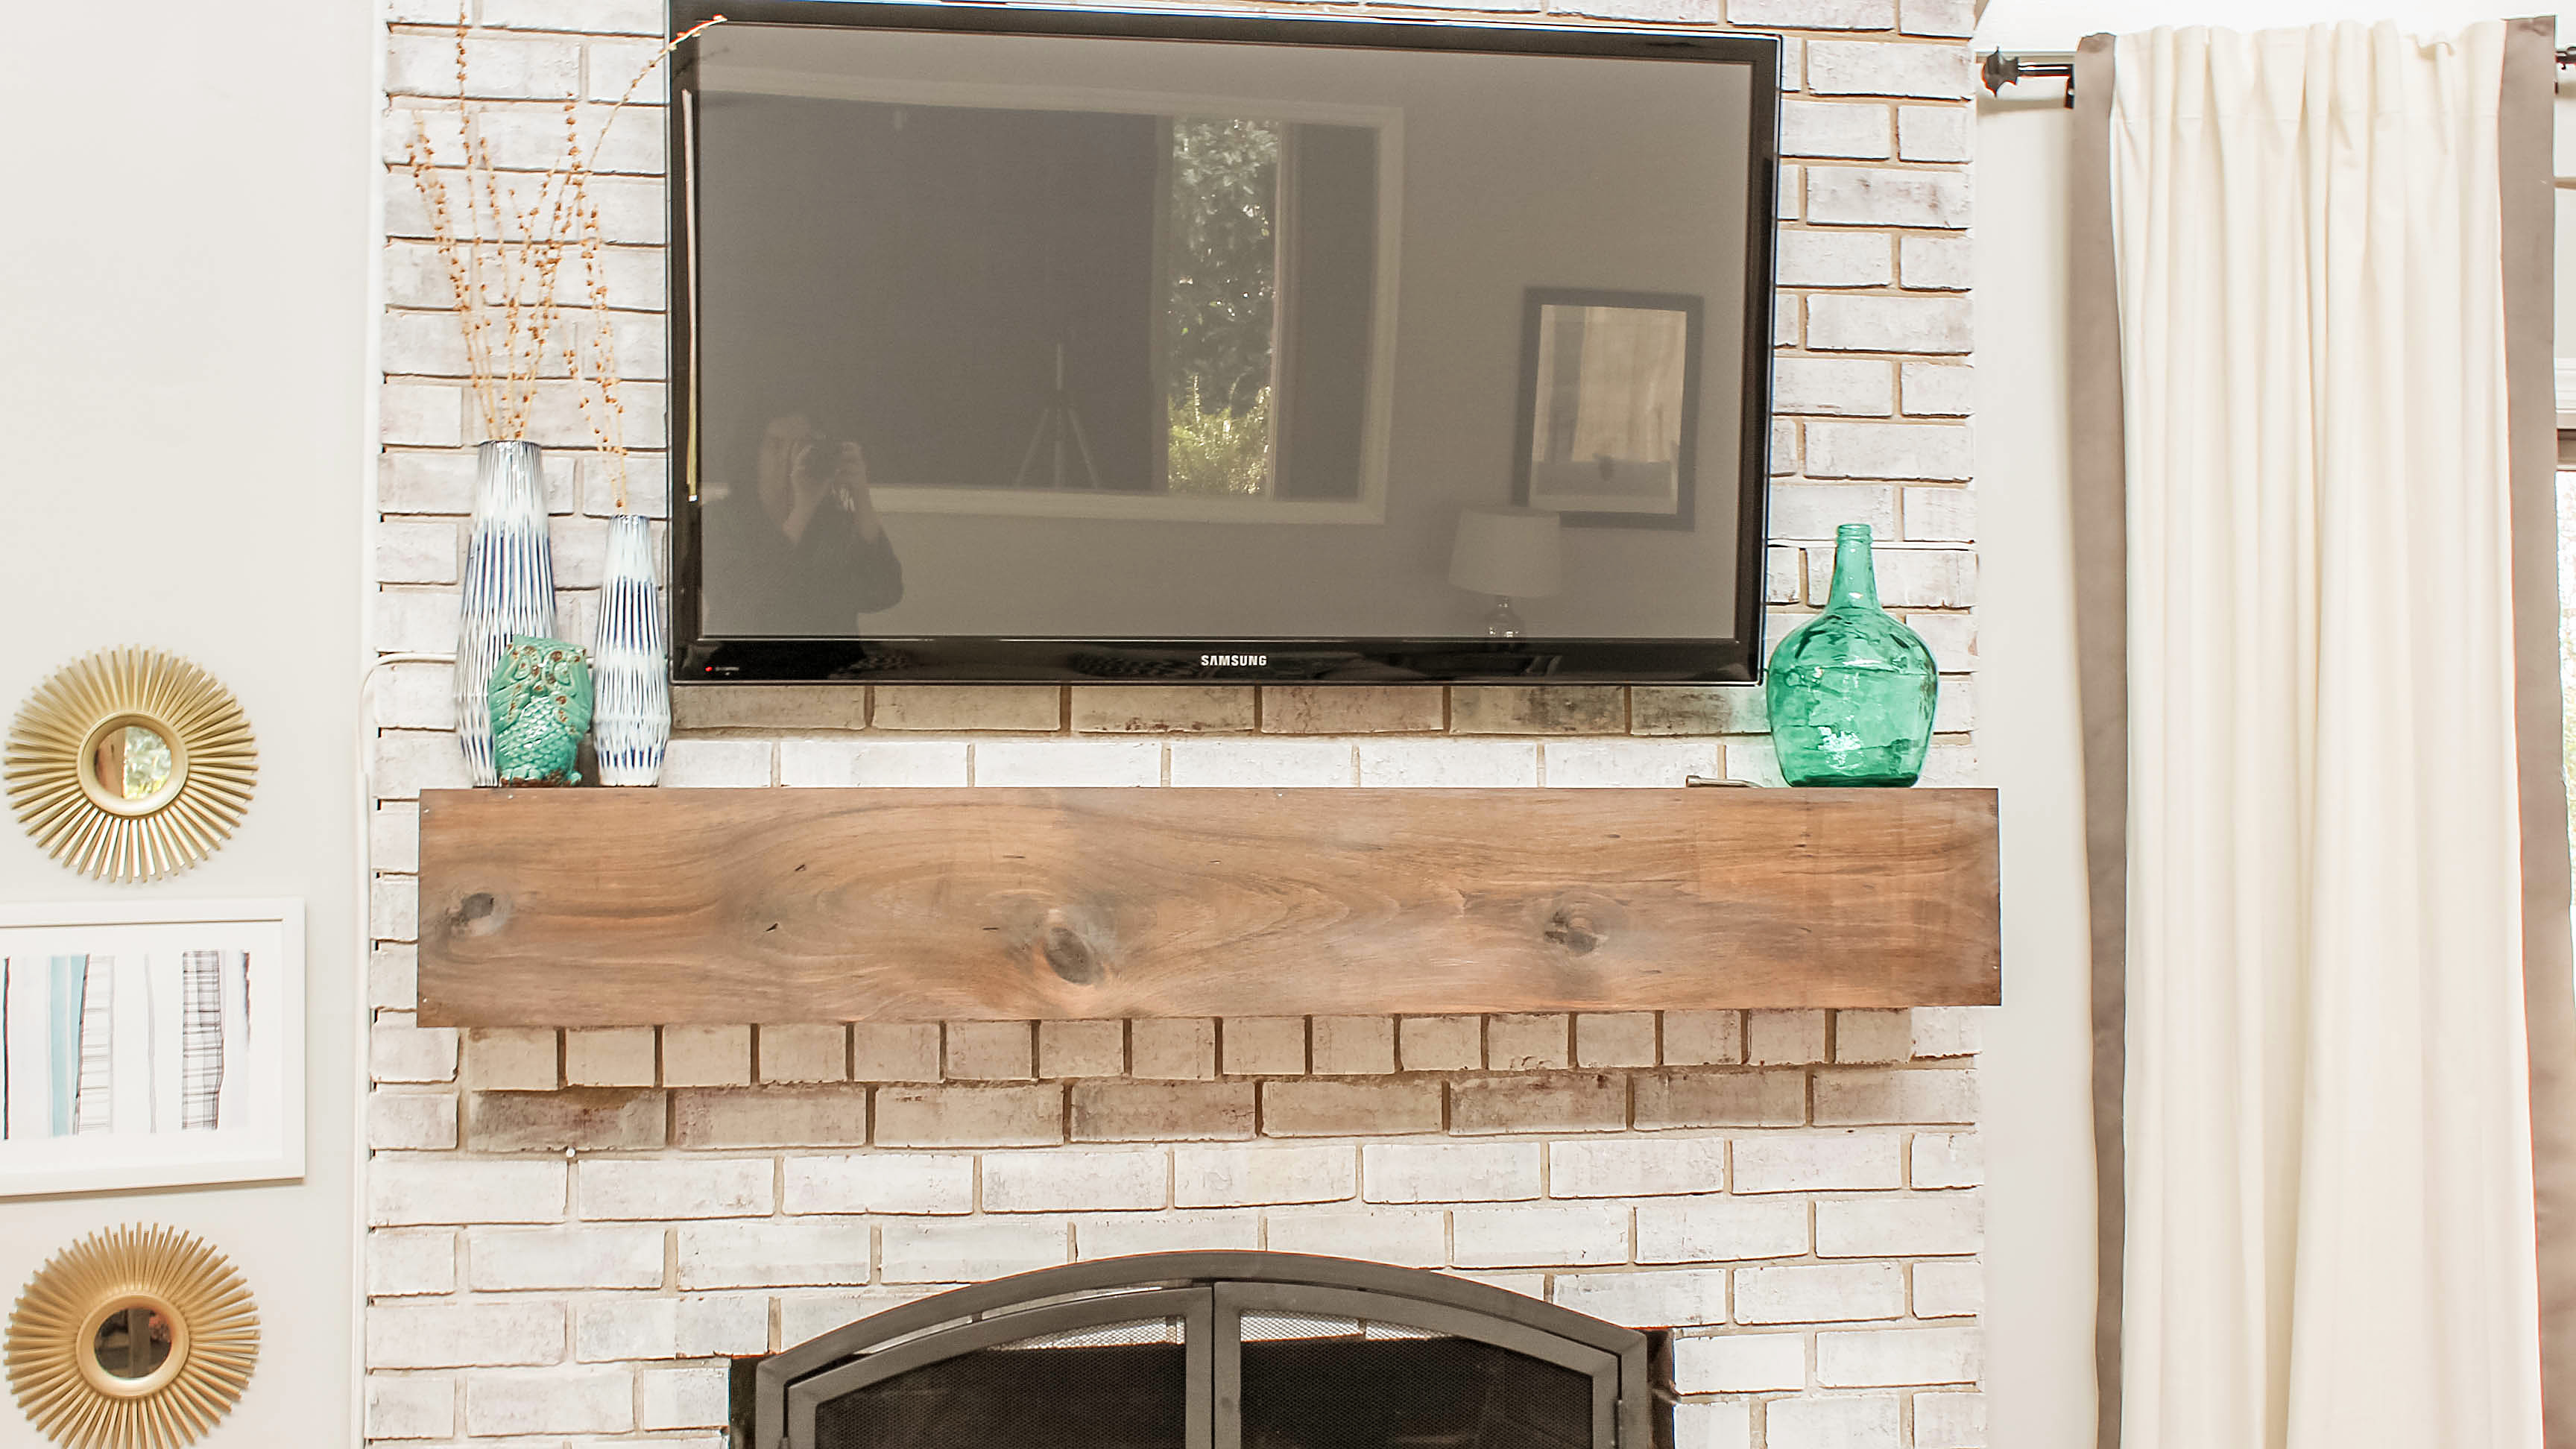 Fantastic How To Mount A Tv Over A Brick Fireplace And Hide The Wires Interior Design Ideas Ghosoteloinfo